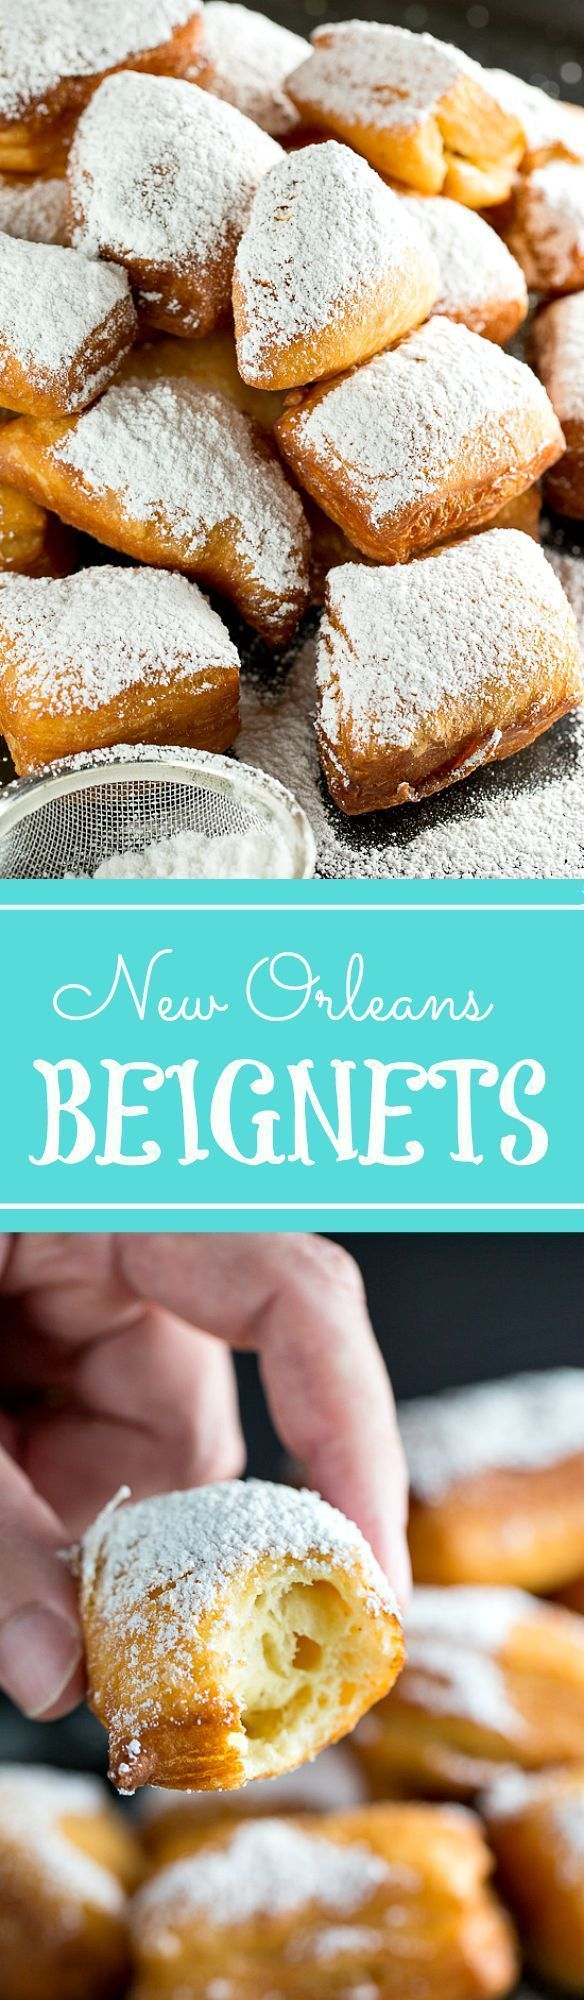 Paula Deen's Beignets. Easier than you think to make!